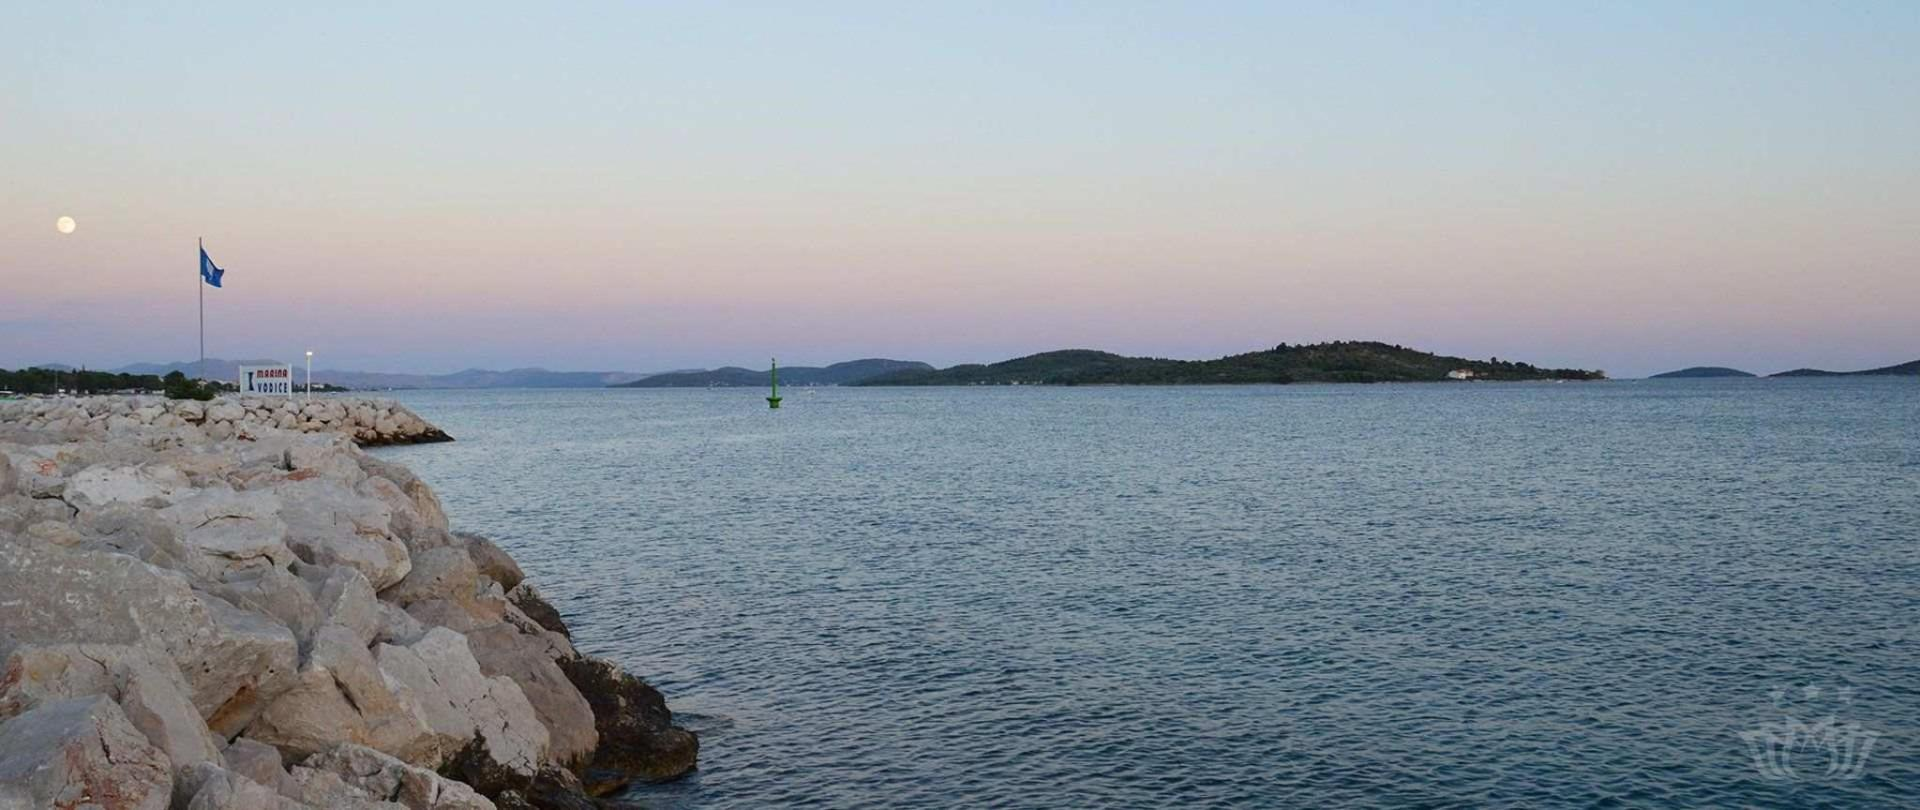 07_vila_ruza_vodice_more_sea.jpg